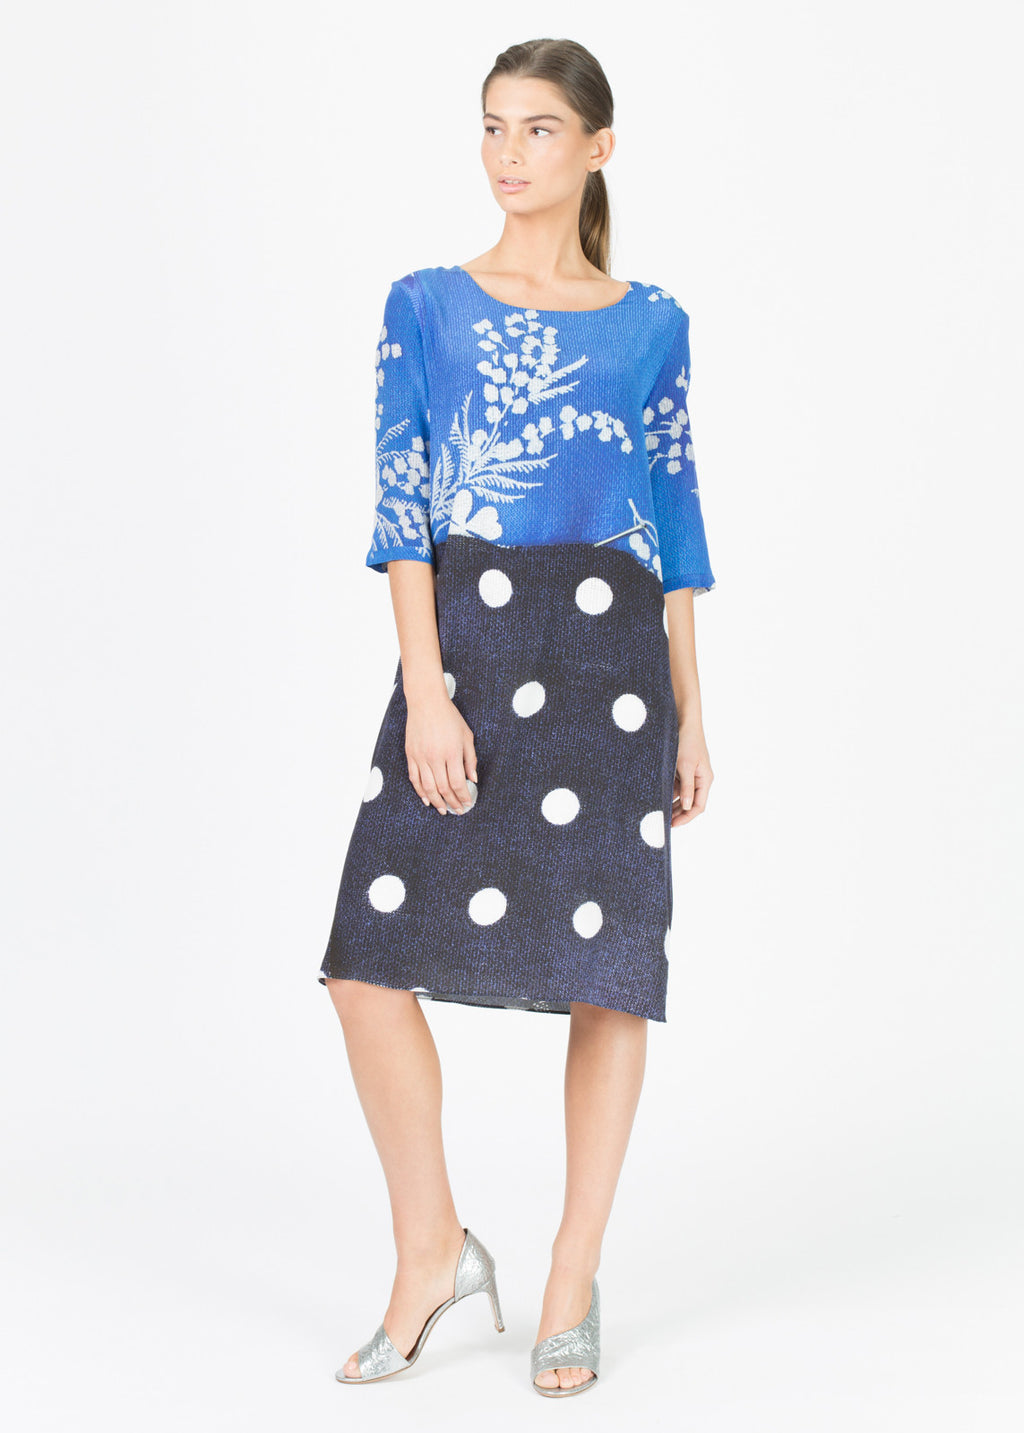 Dot Skirt Blossom Dress